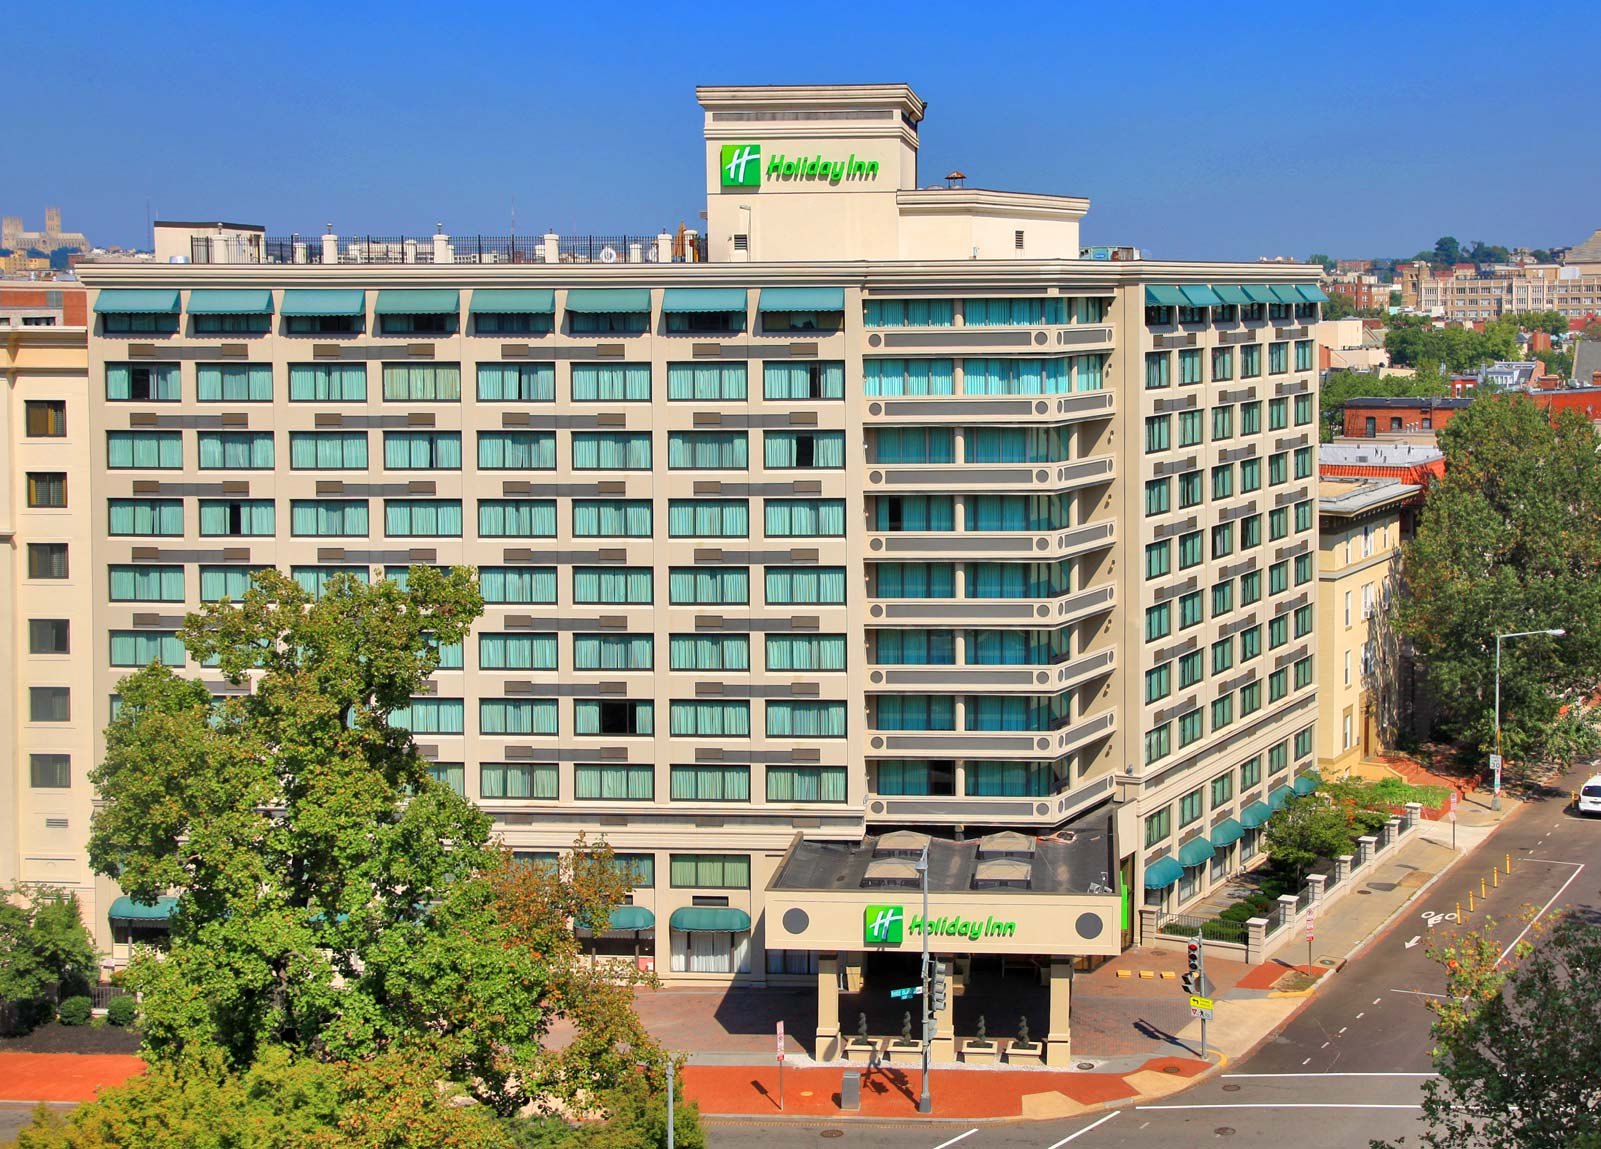 Holiday Inn Washington DC